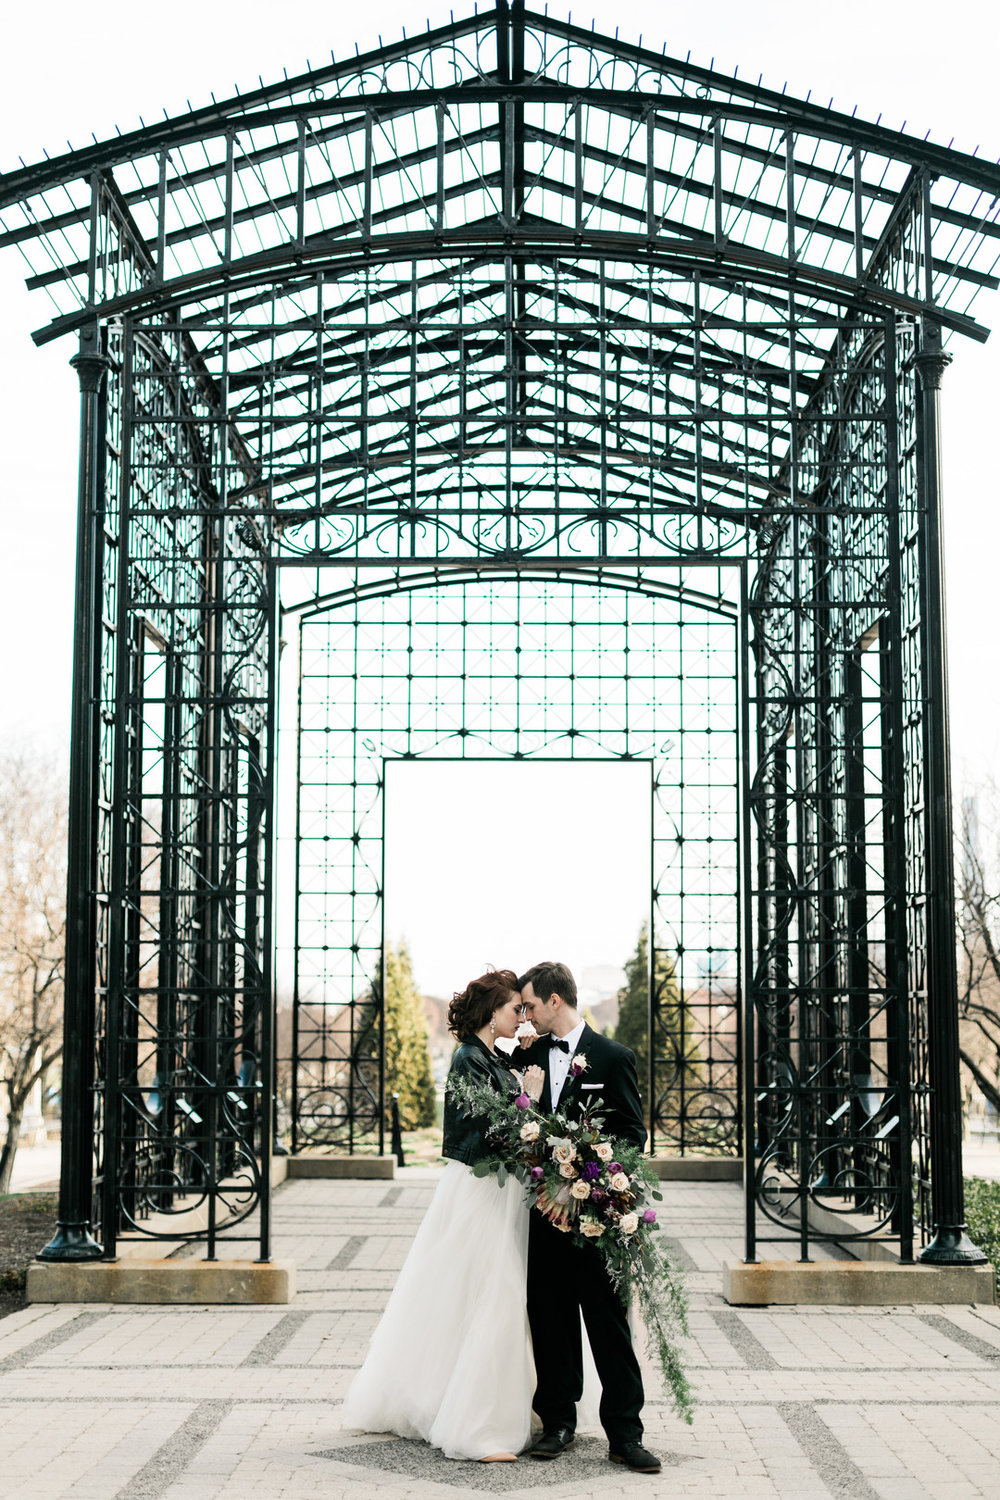 Romantic Bride and Groom Portrait Chicago Wedding Stephanie Wood Photography